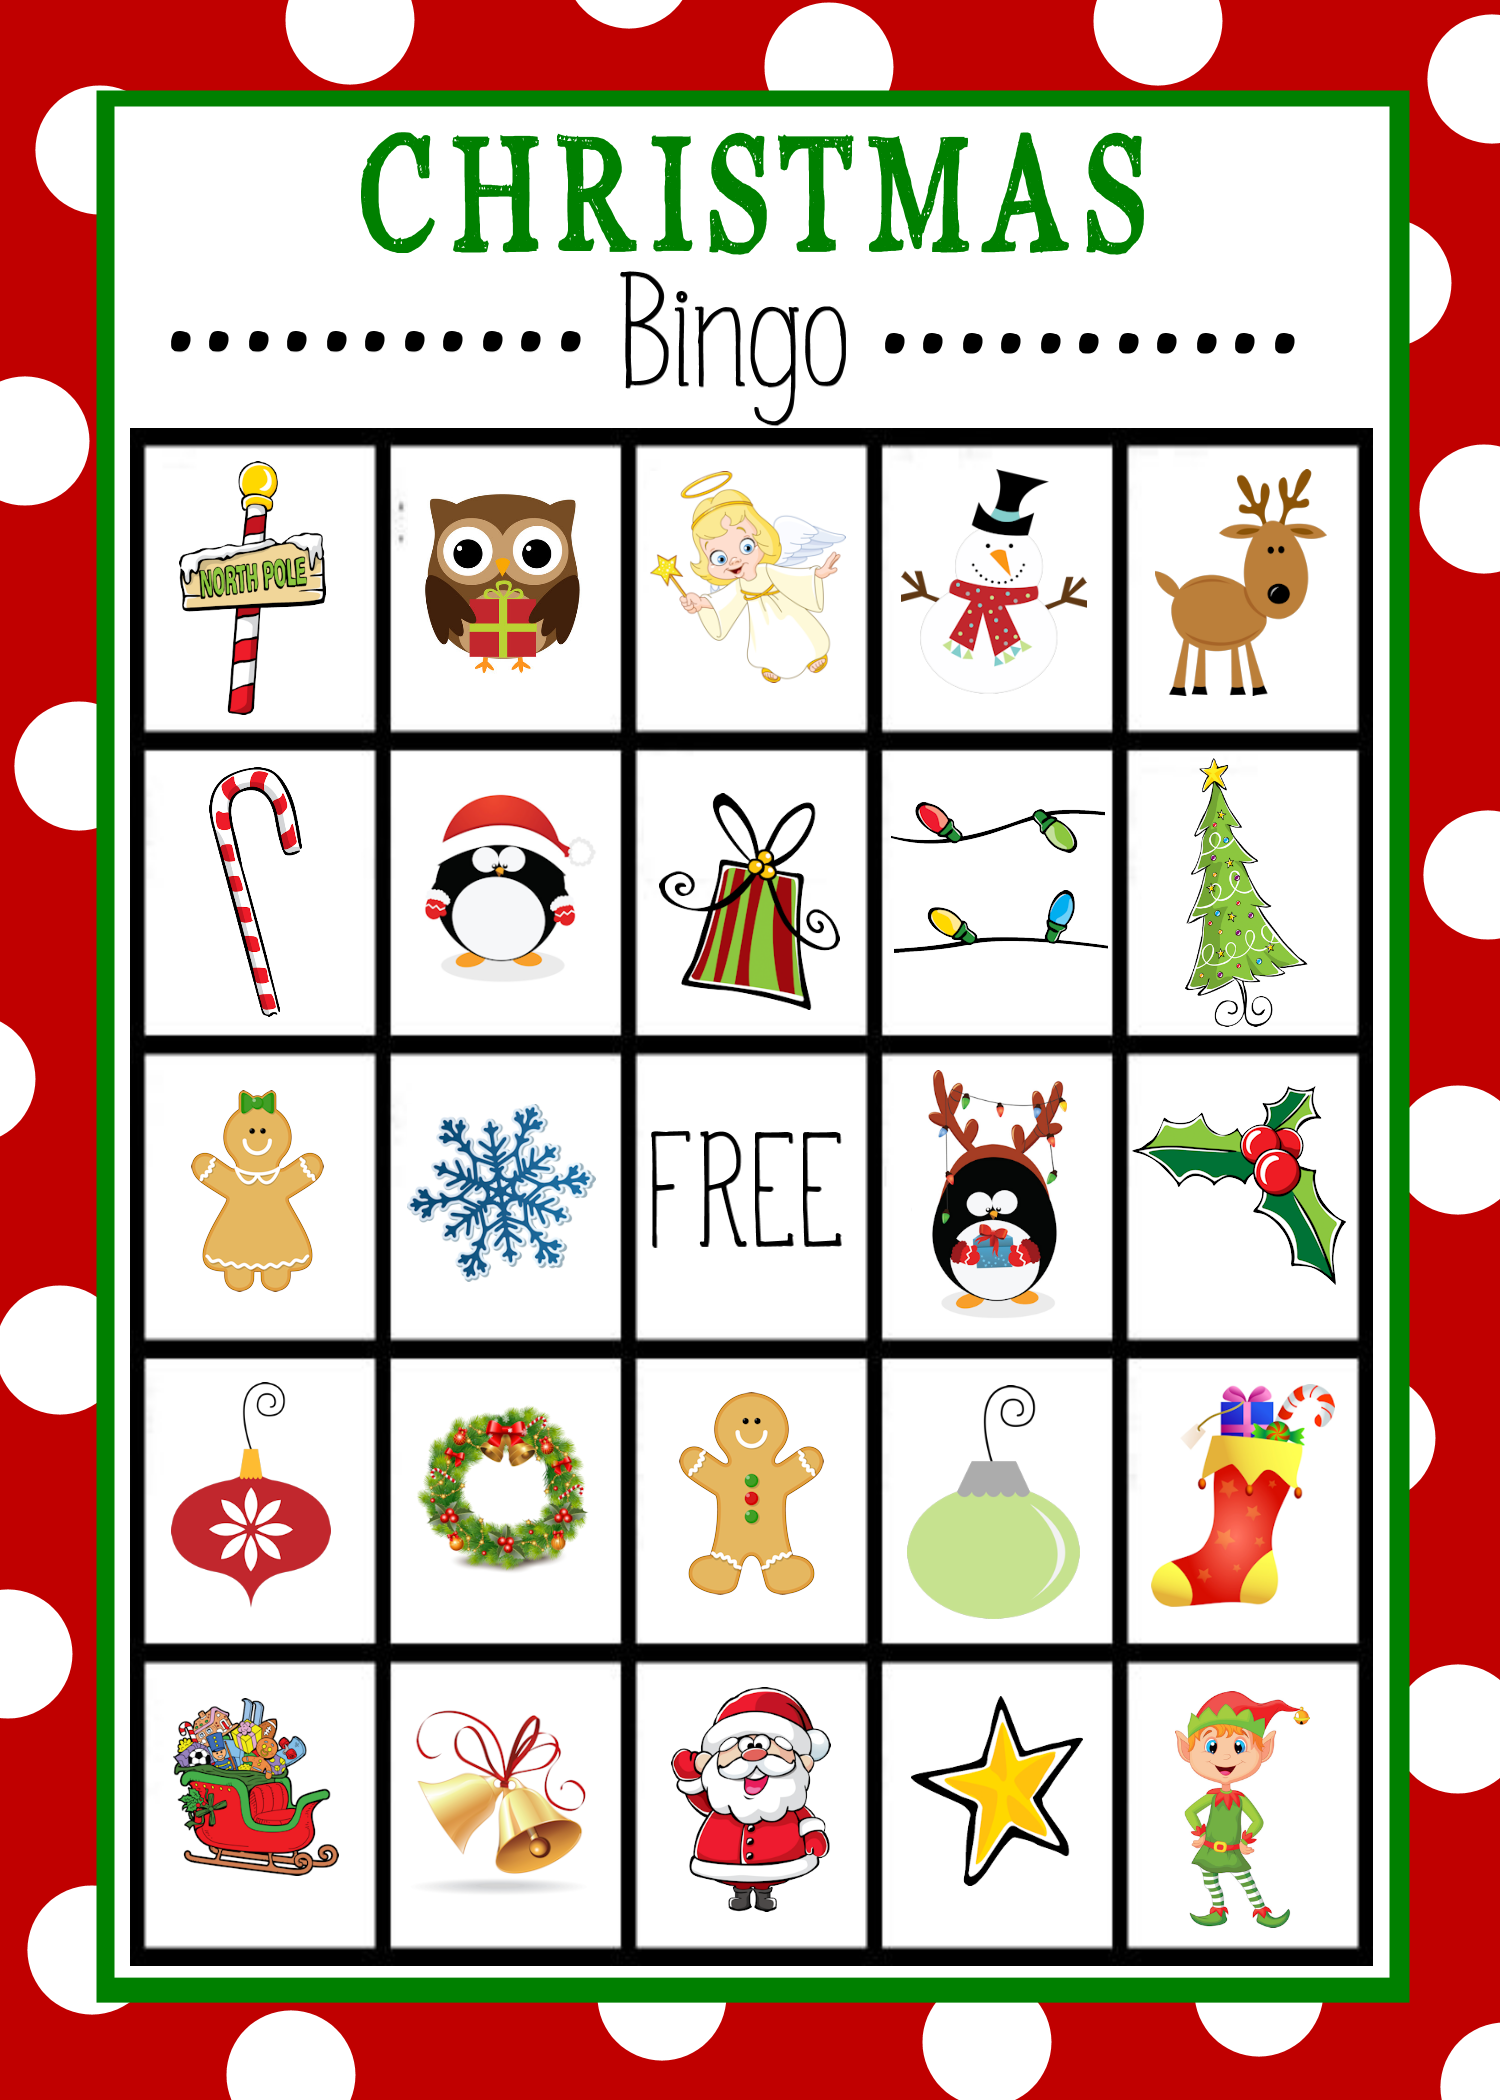 7 Images of Free Printable Bingo Game Boards